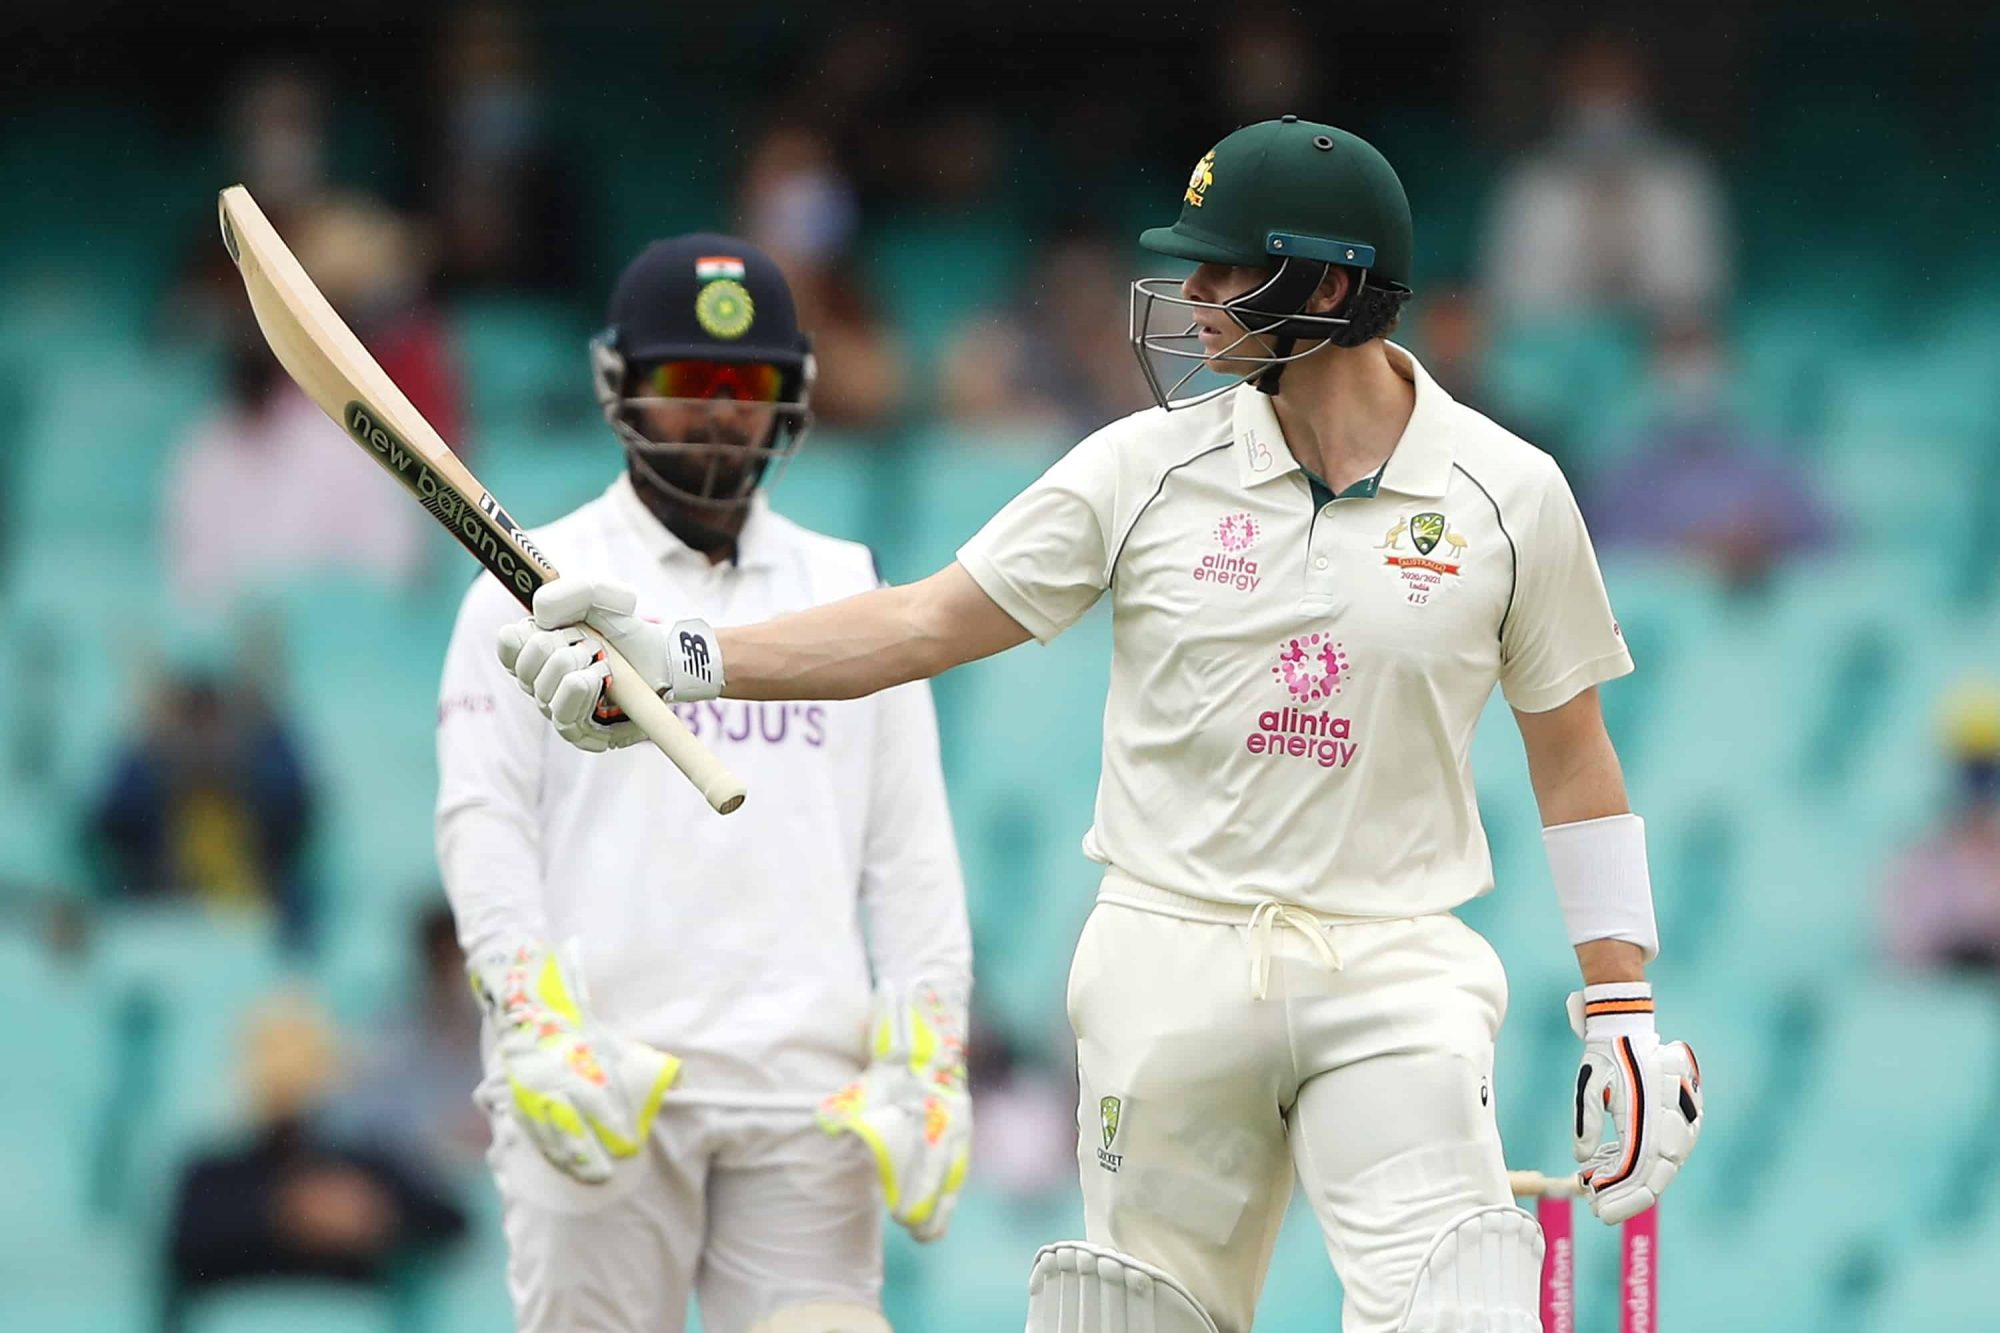 IND vs AUS: This Inning Would Keep A Few People Quiet: Steve Smith After Hitting 27th Test Hundred